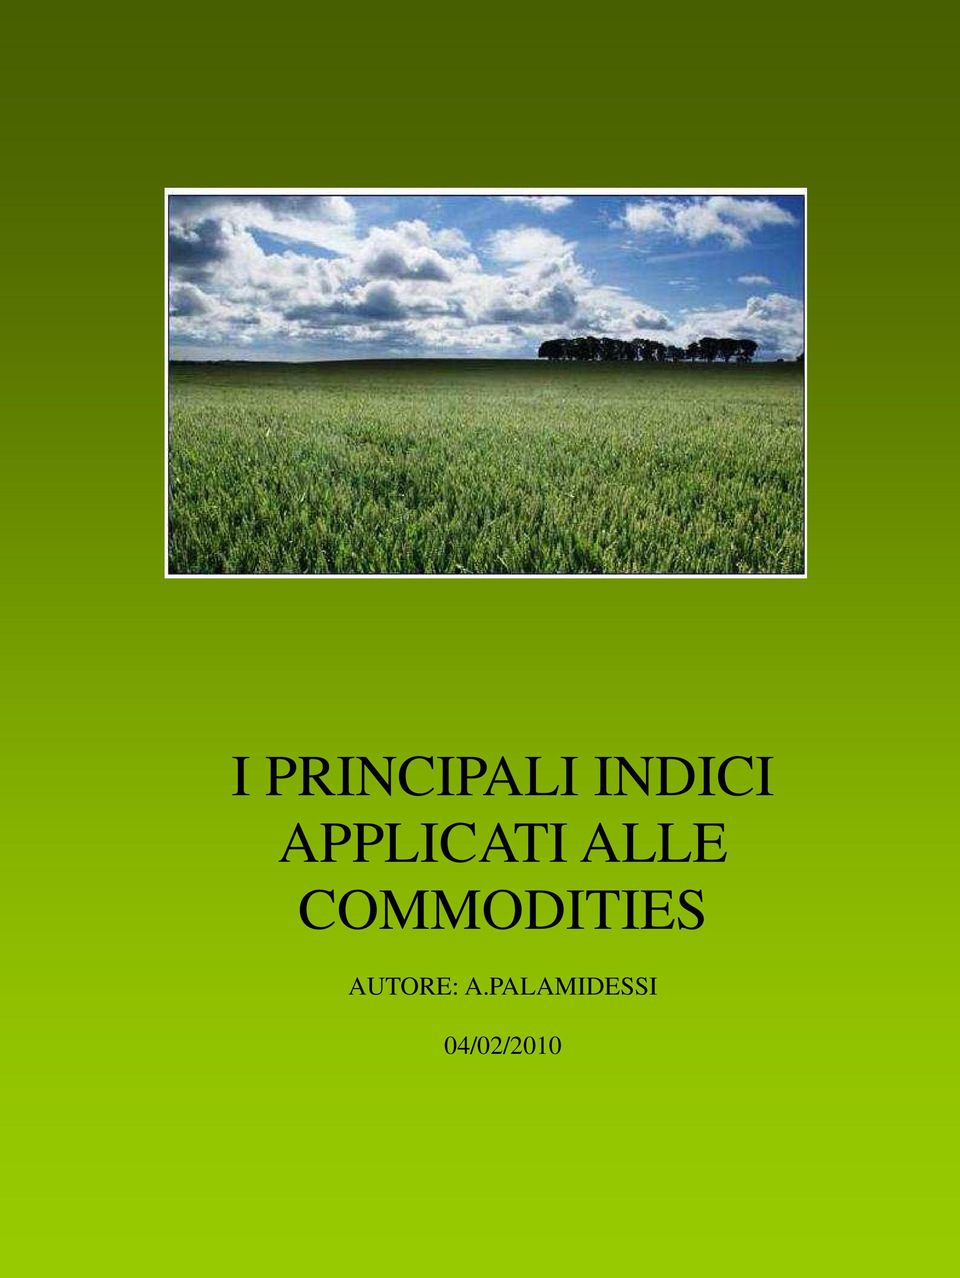 COMMODITIES AUTORE: